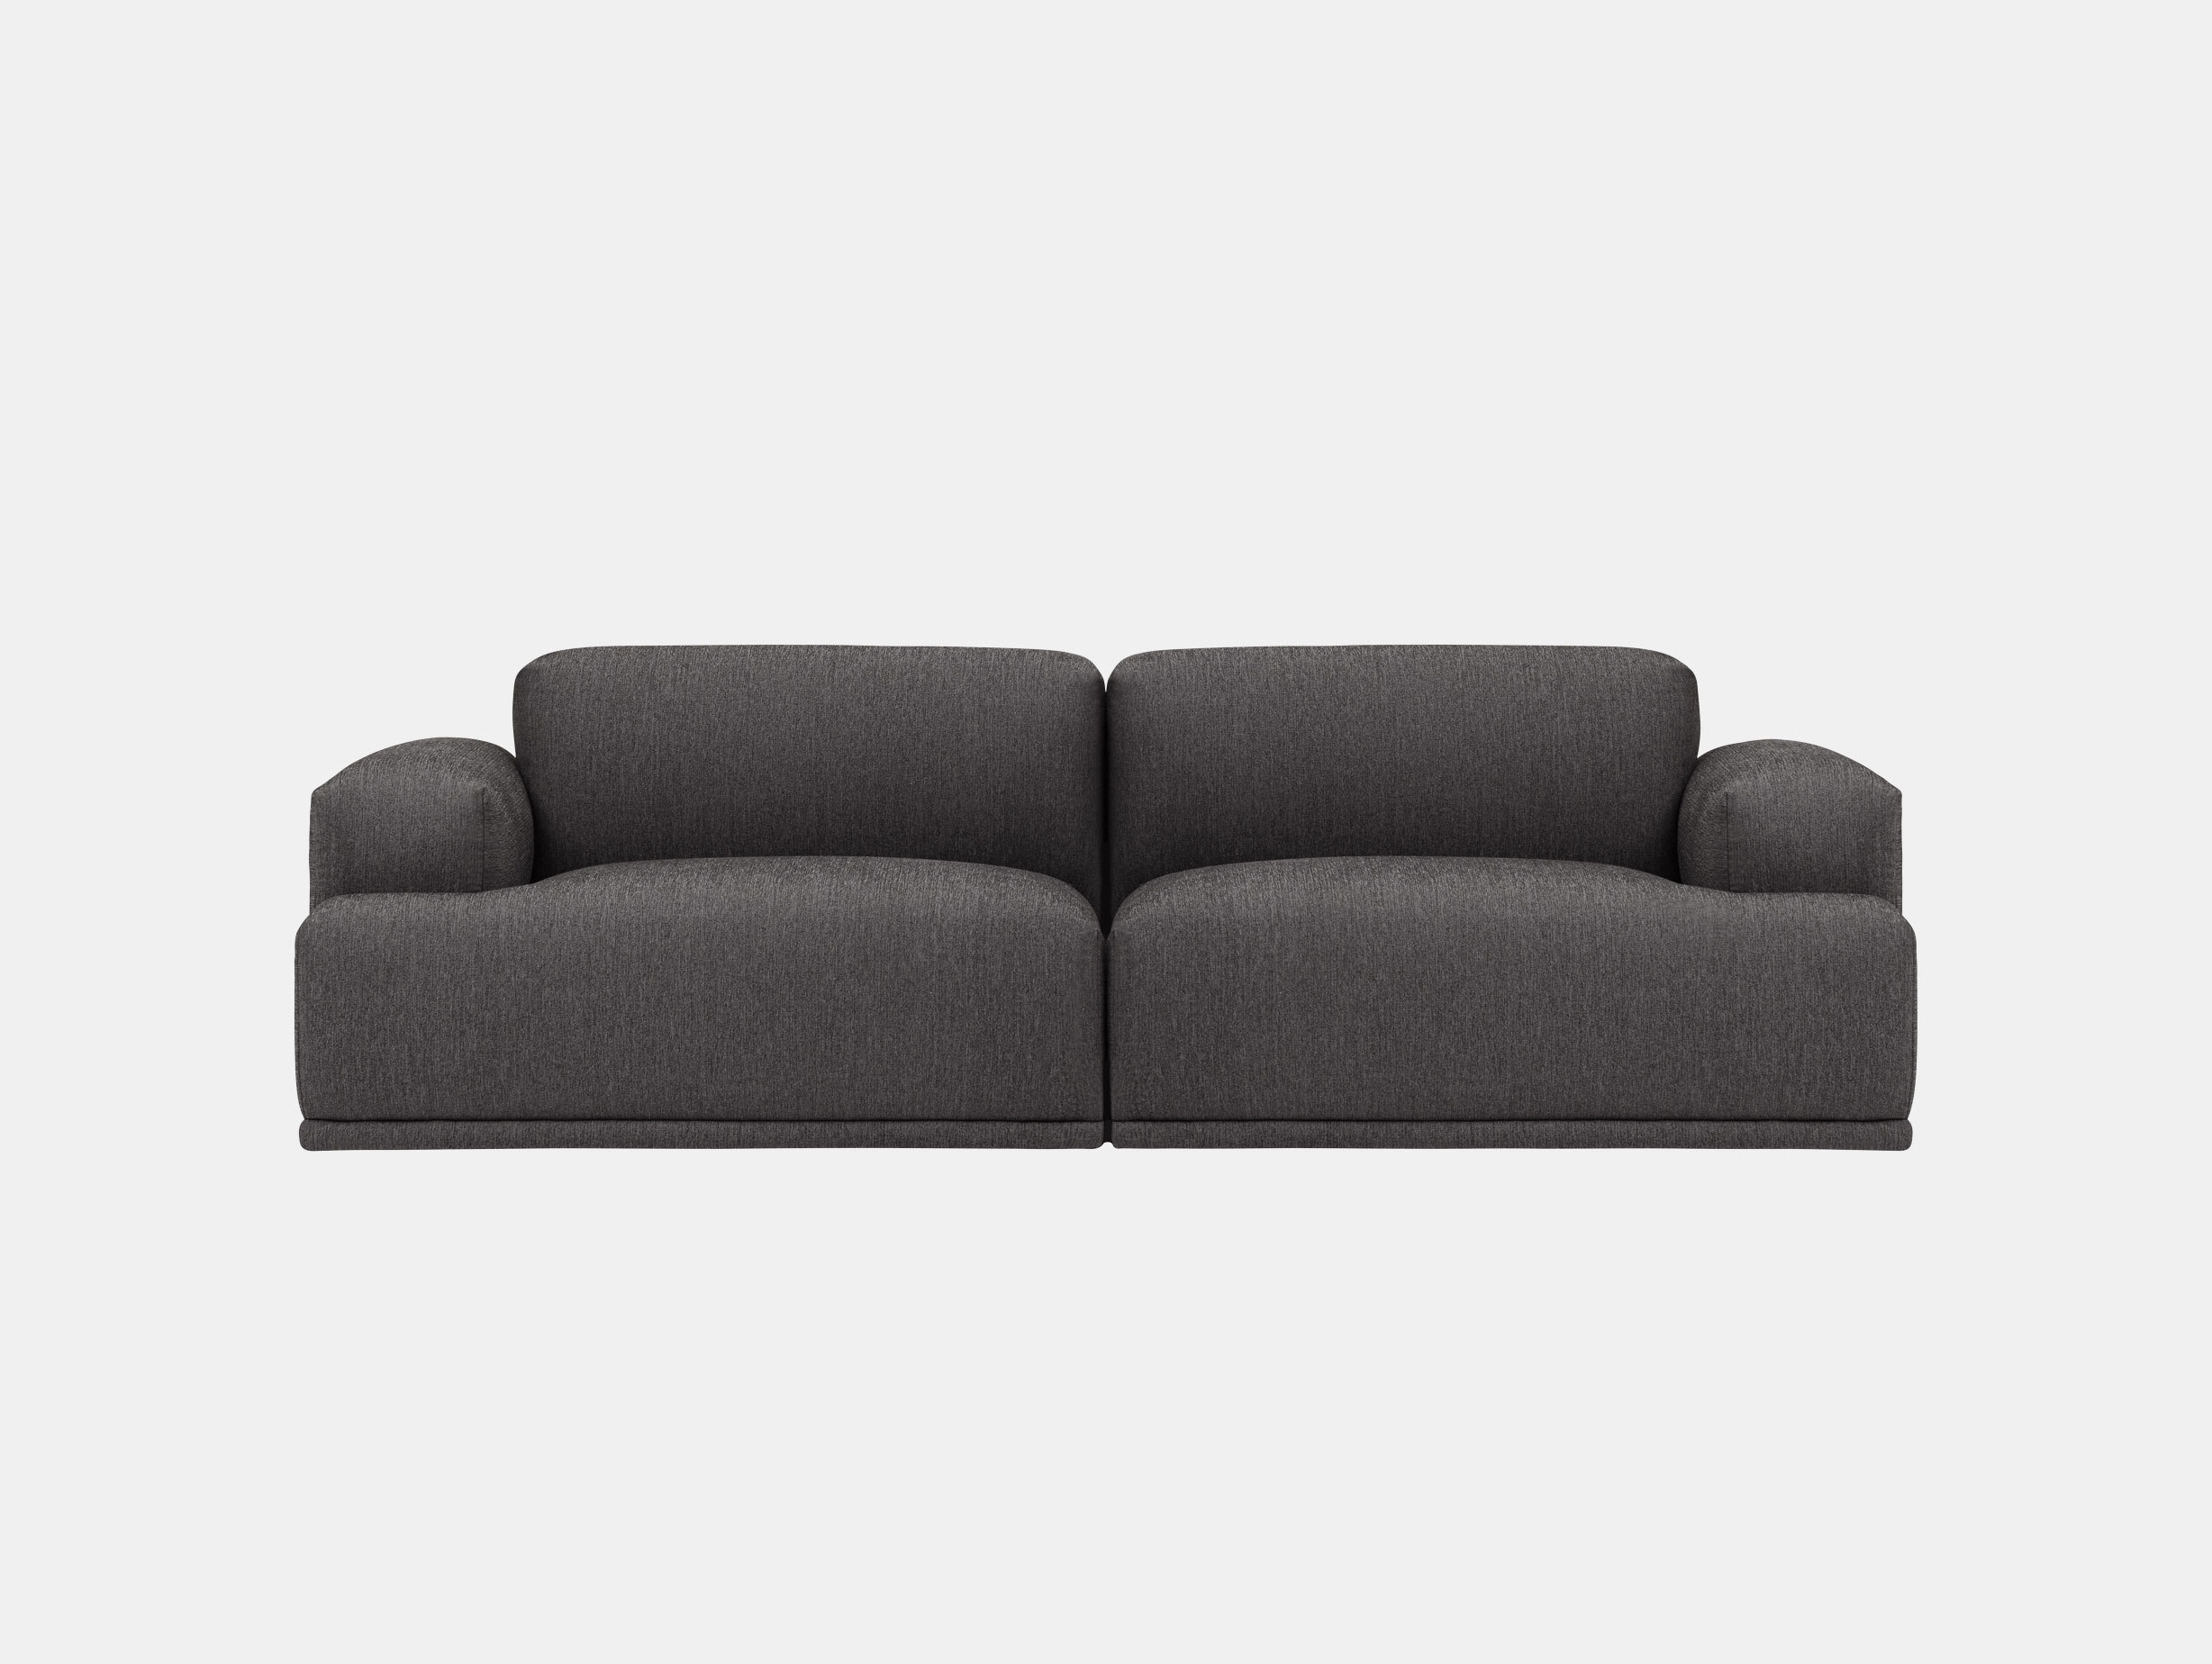 Connect Sofa image 1